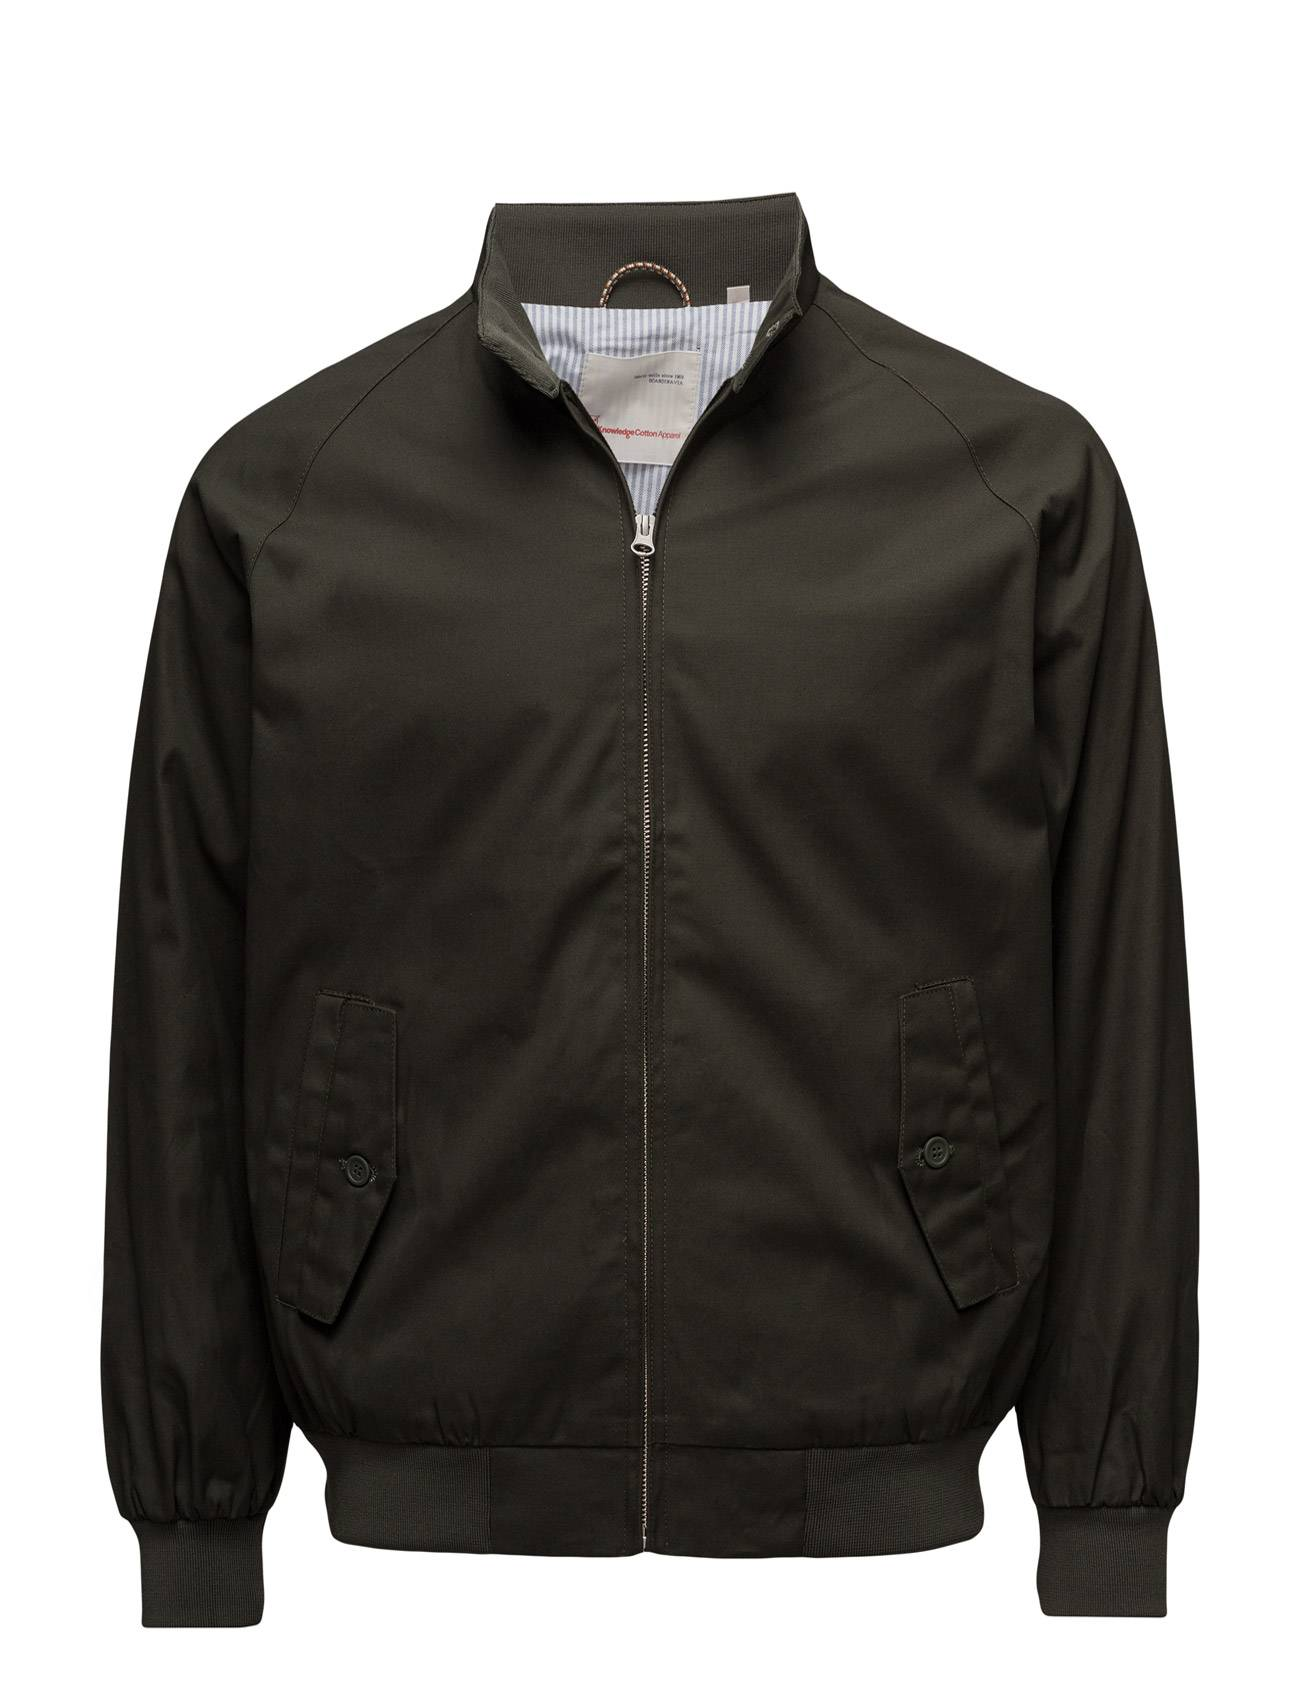 Knowledge Cotton Apparel Catalina Jacket W/Stripped Oxford L